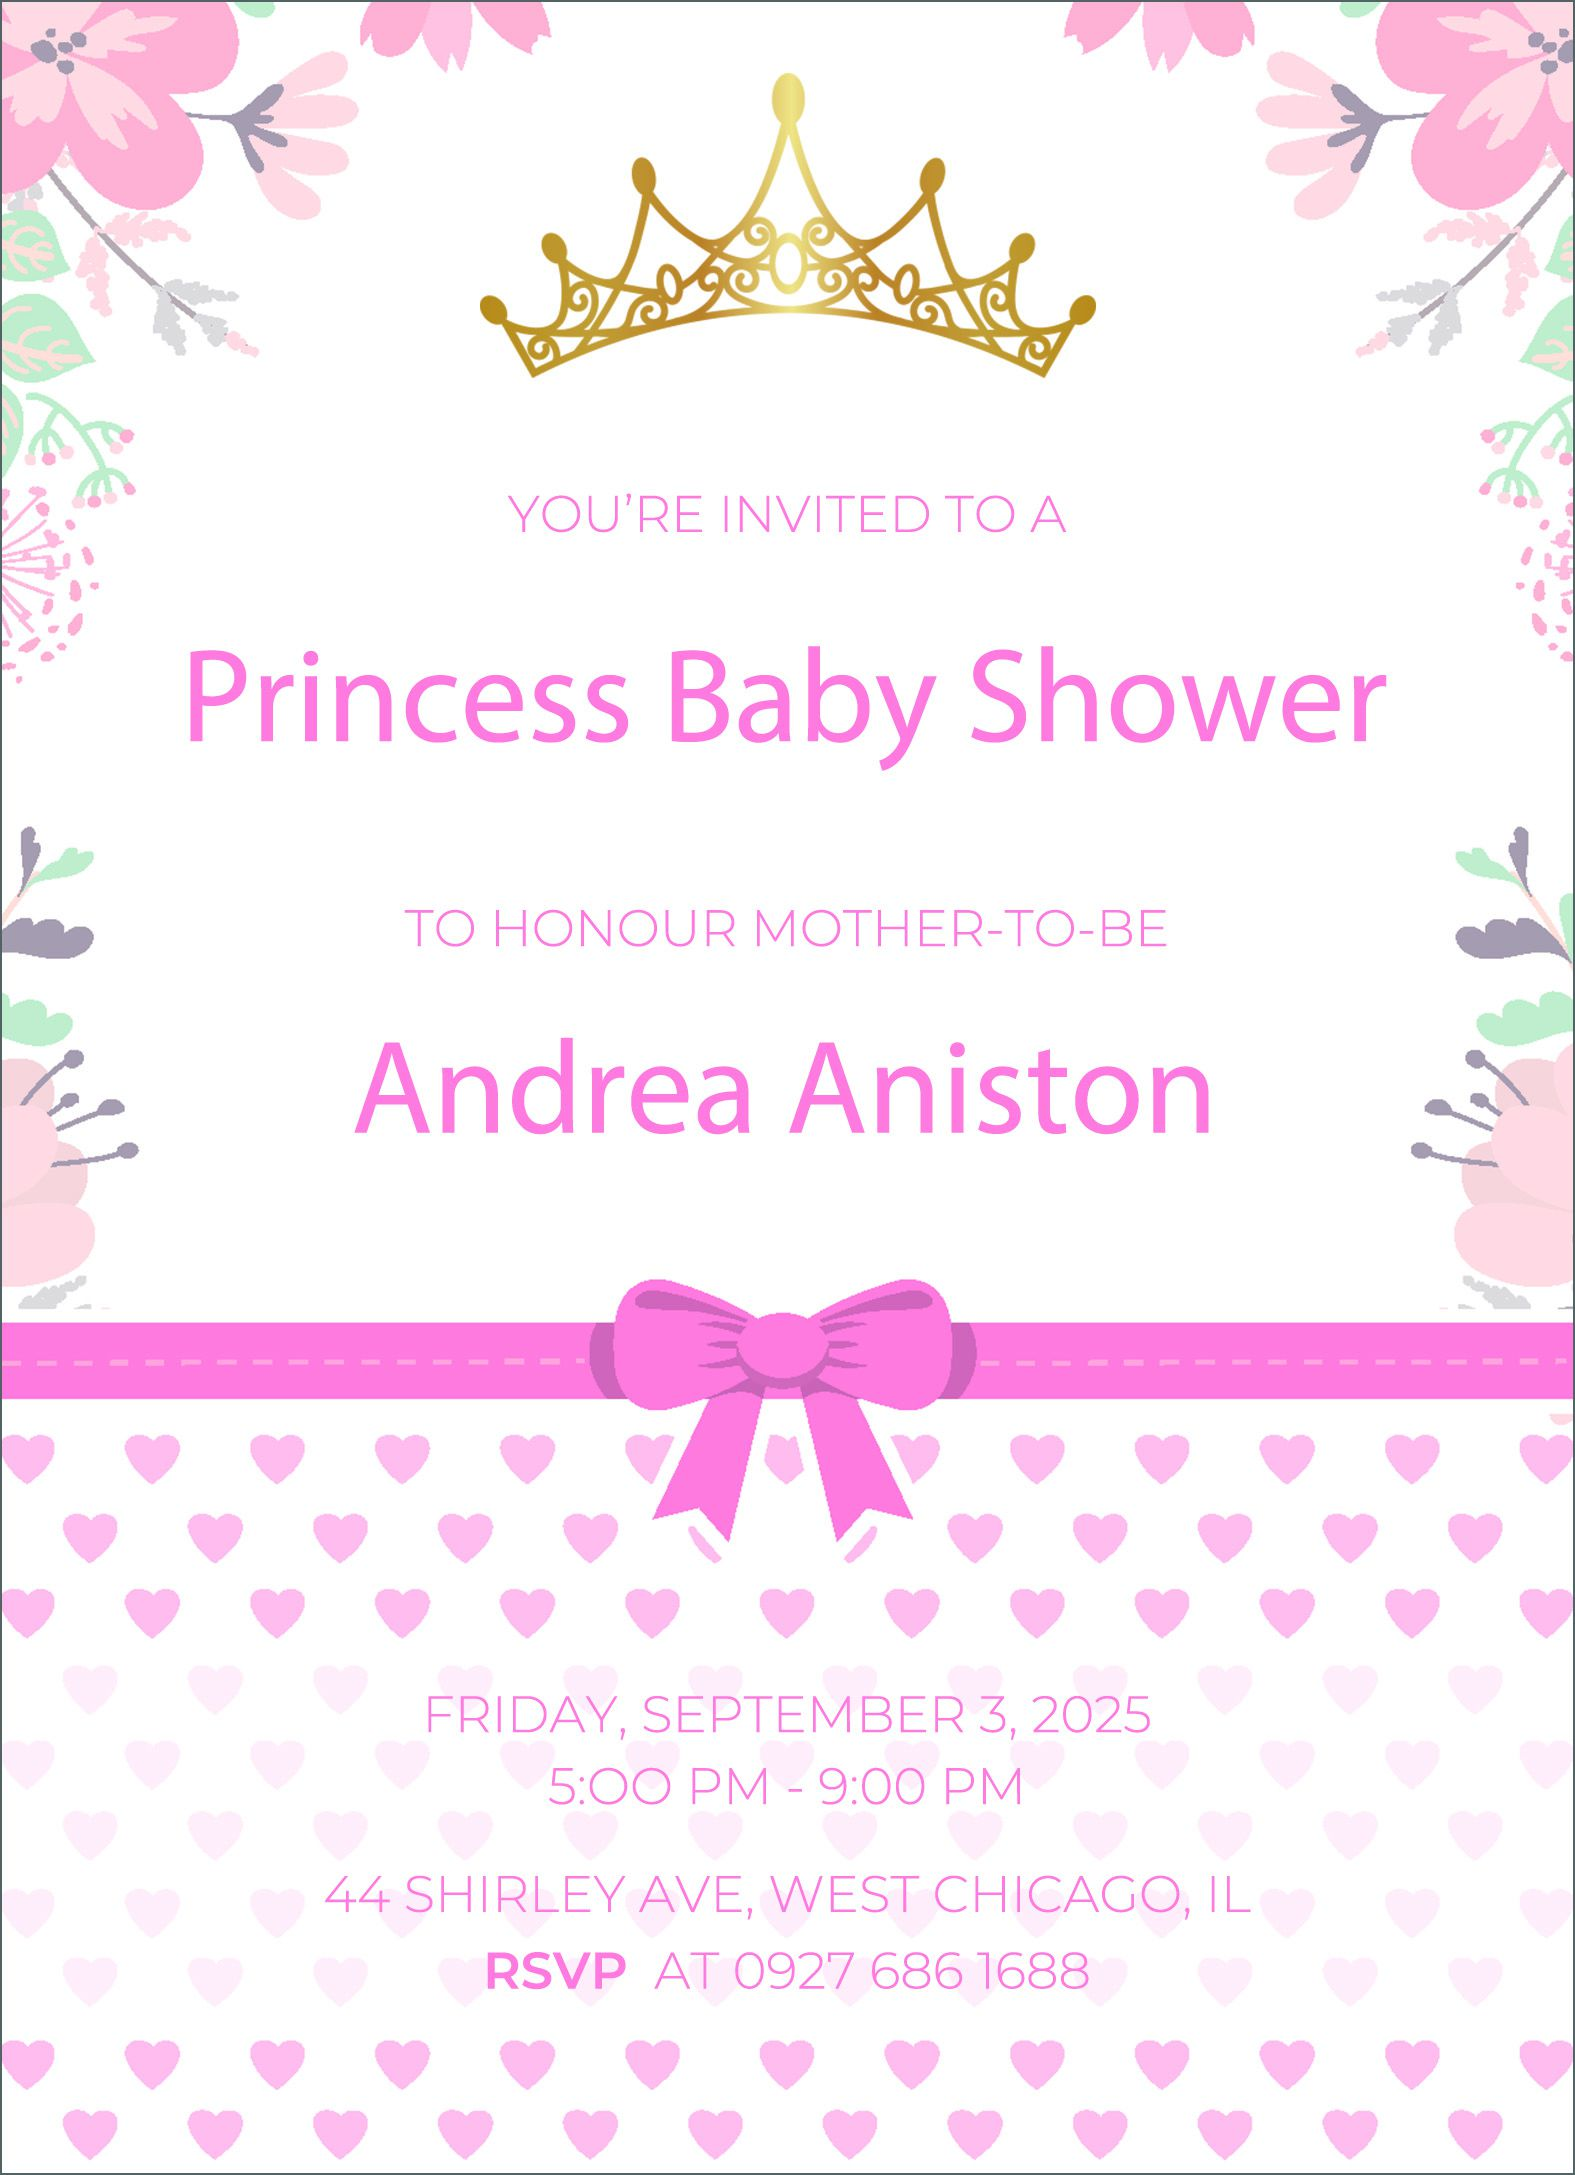 003 Amazing Baby Shower Invitation Template Word Image  Office Wording Sample Work DownloadFull